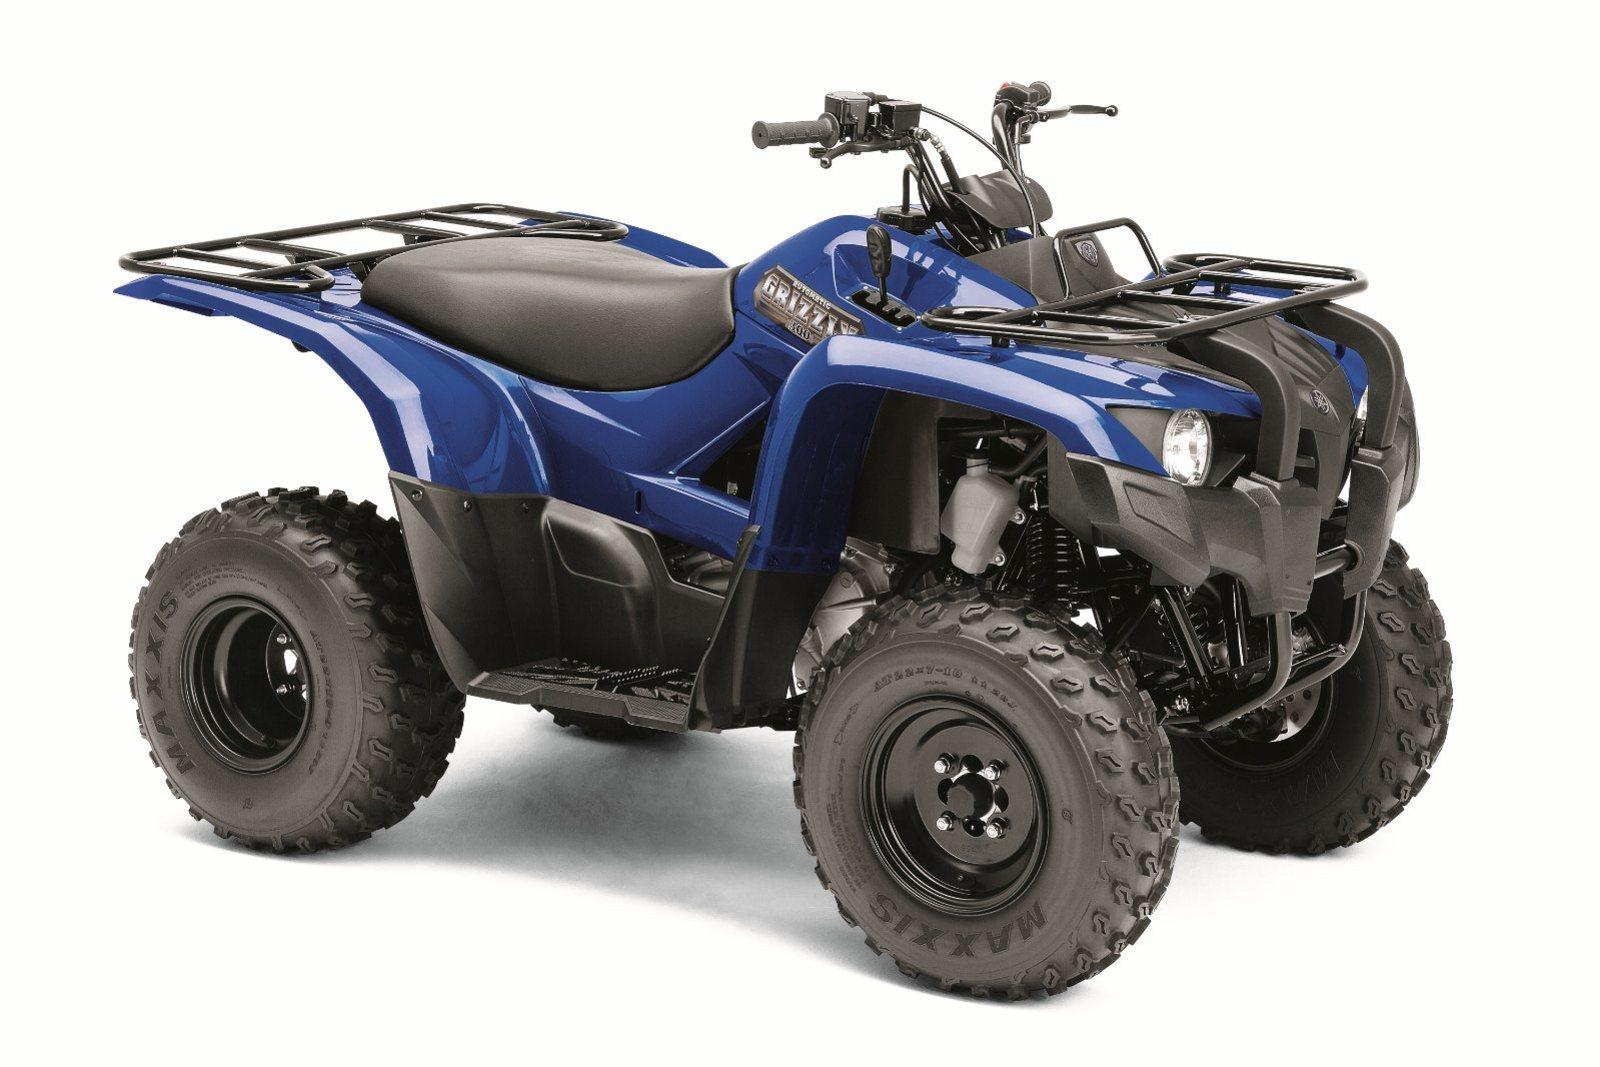 2012 yamaha grizzly 300 automatic review top speed